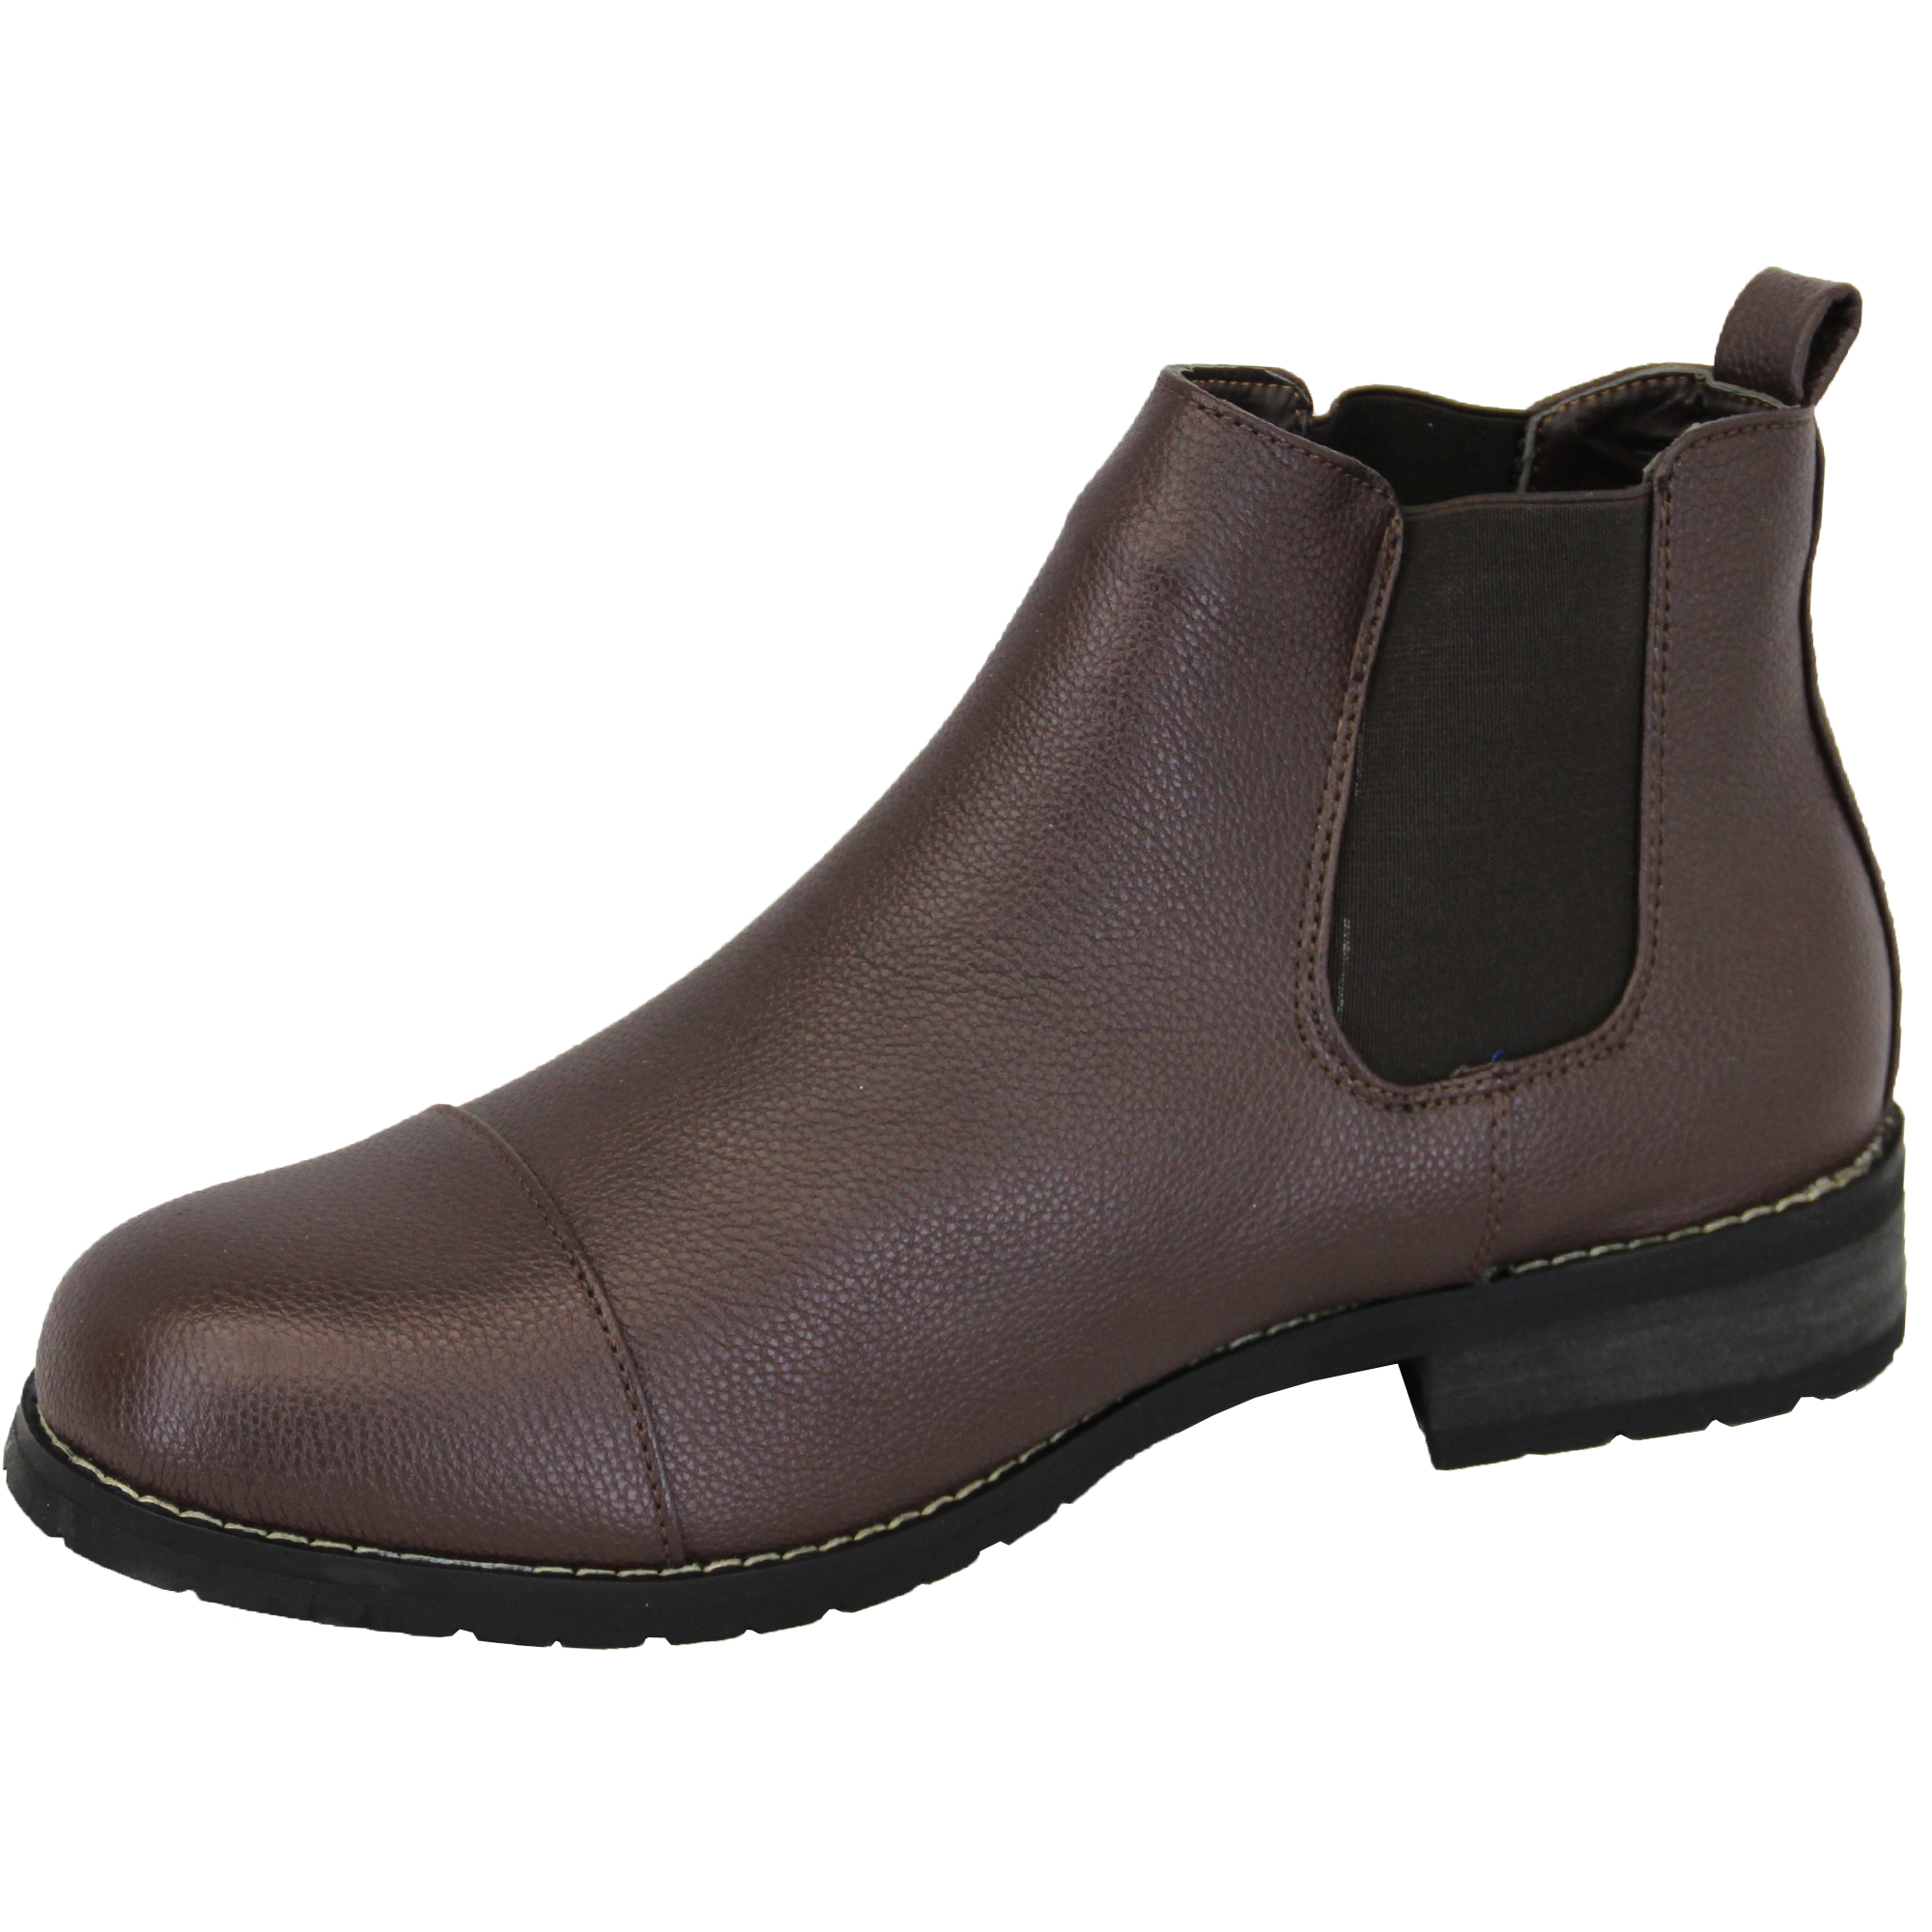 Mens Chelsea Boots Rock U0026 Religion Dealer High Ankle Leather Look Shoes Designer | EBay